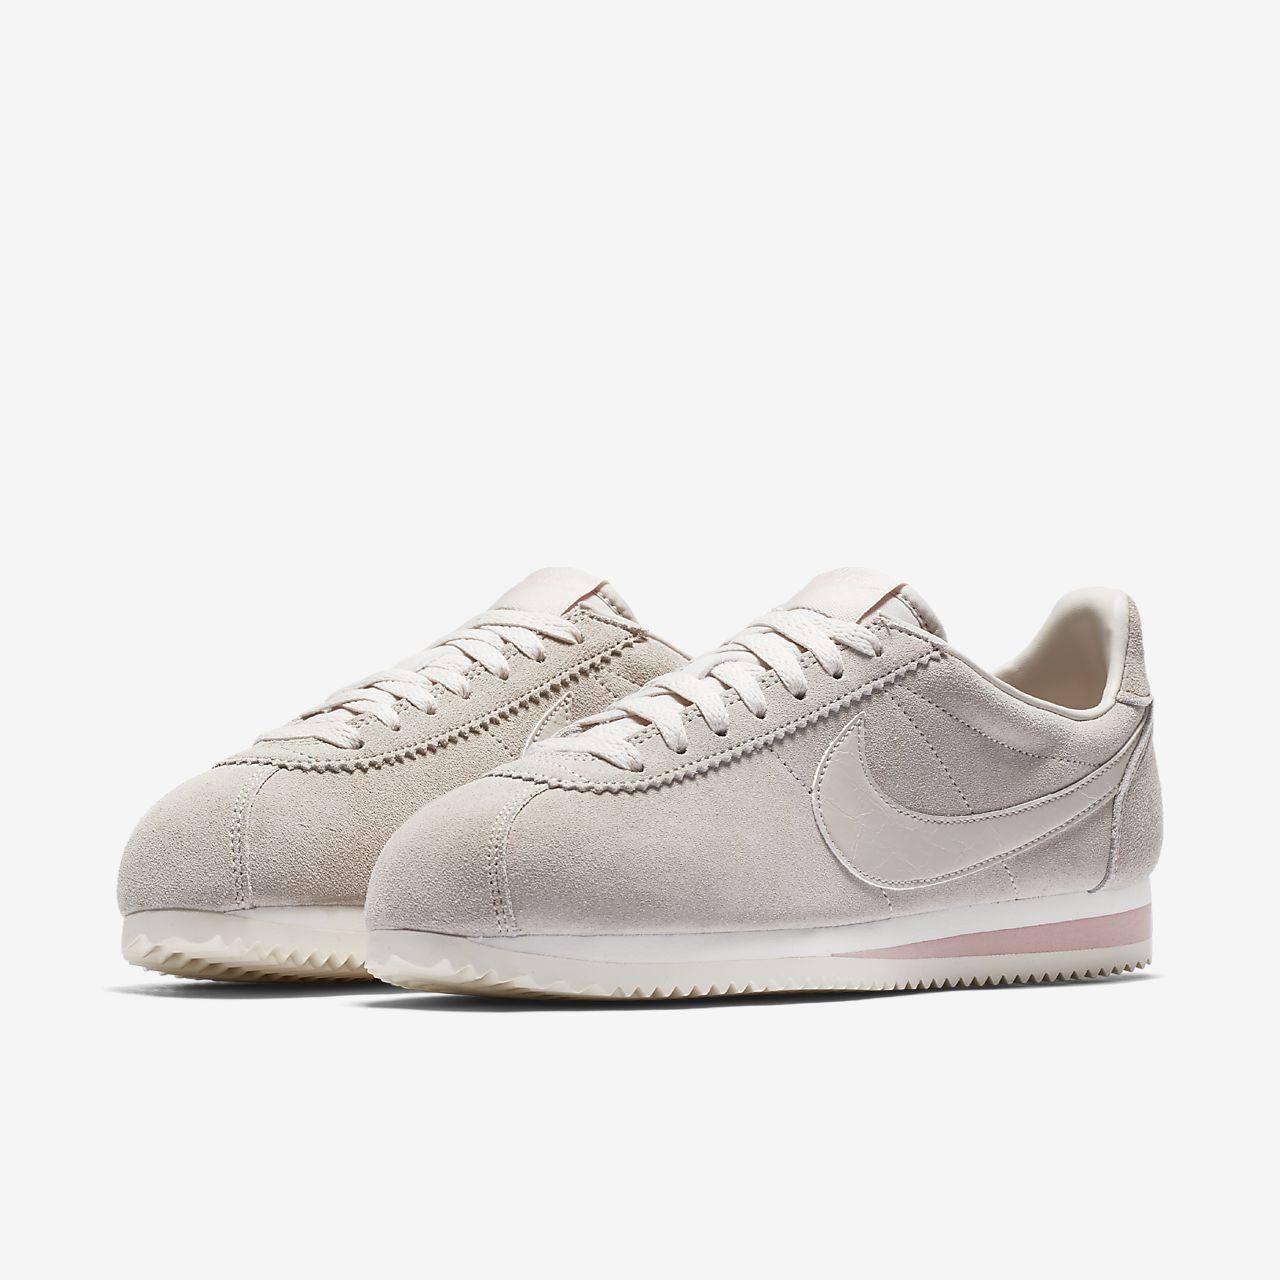 NIKE Womens Classic Cortez Suede AA3839-003 DESERT SAND Size 5.5